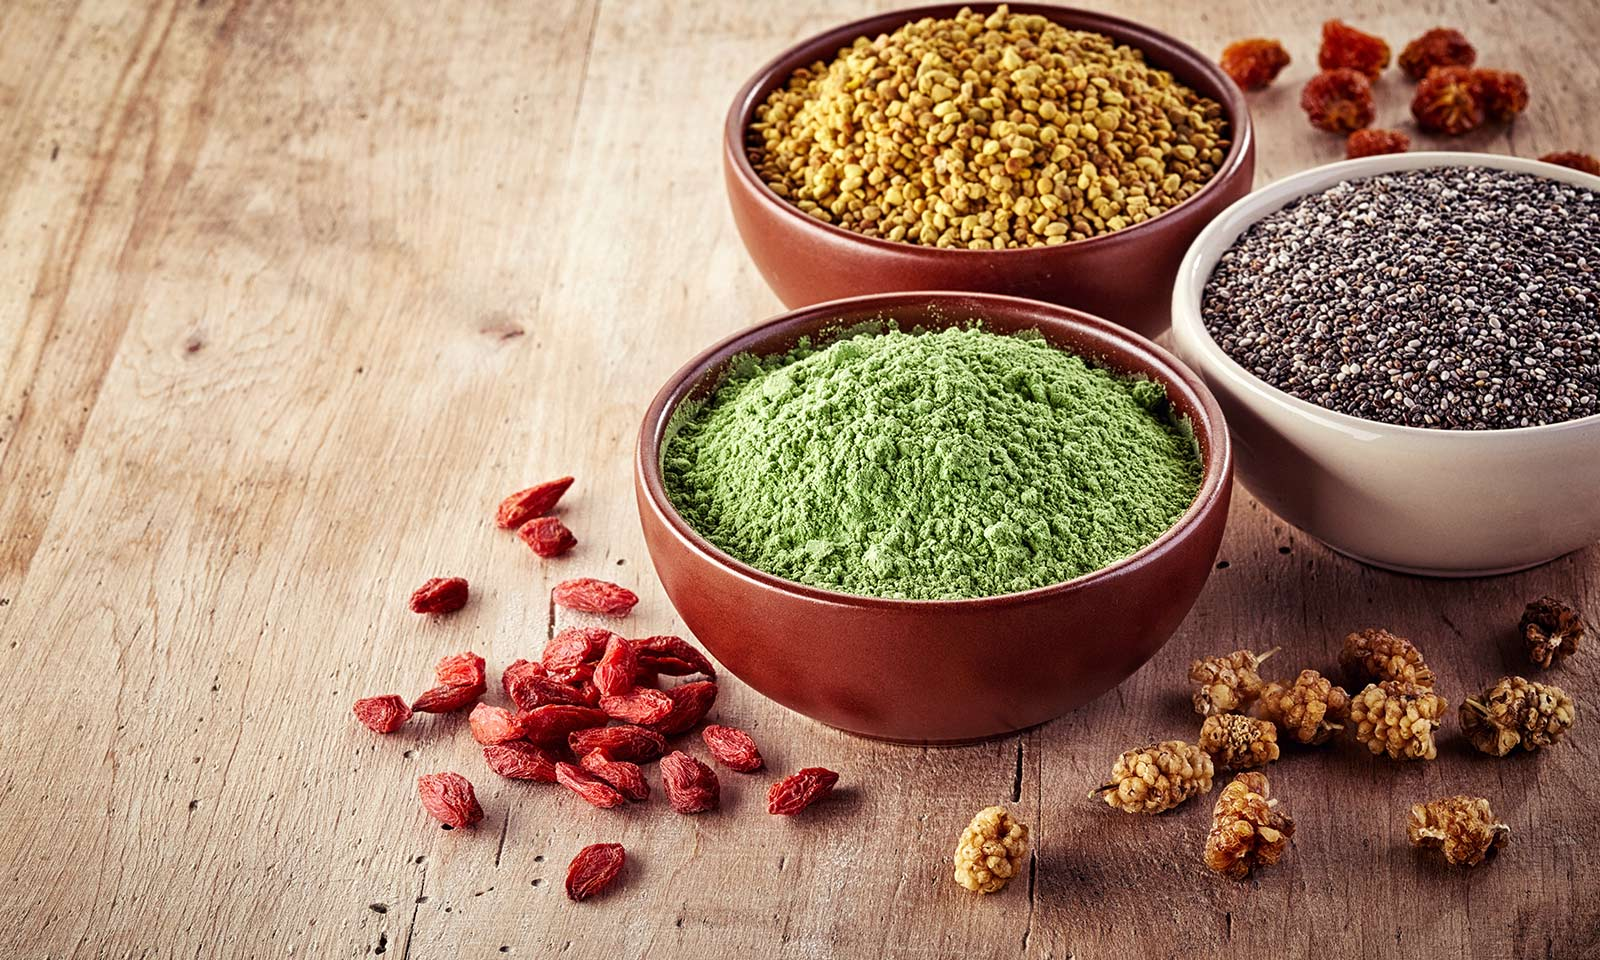 Plant-based-protein-sources-to-stock-up-on